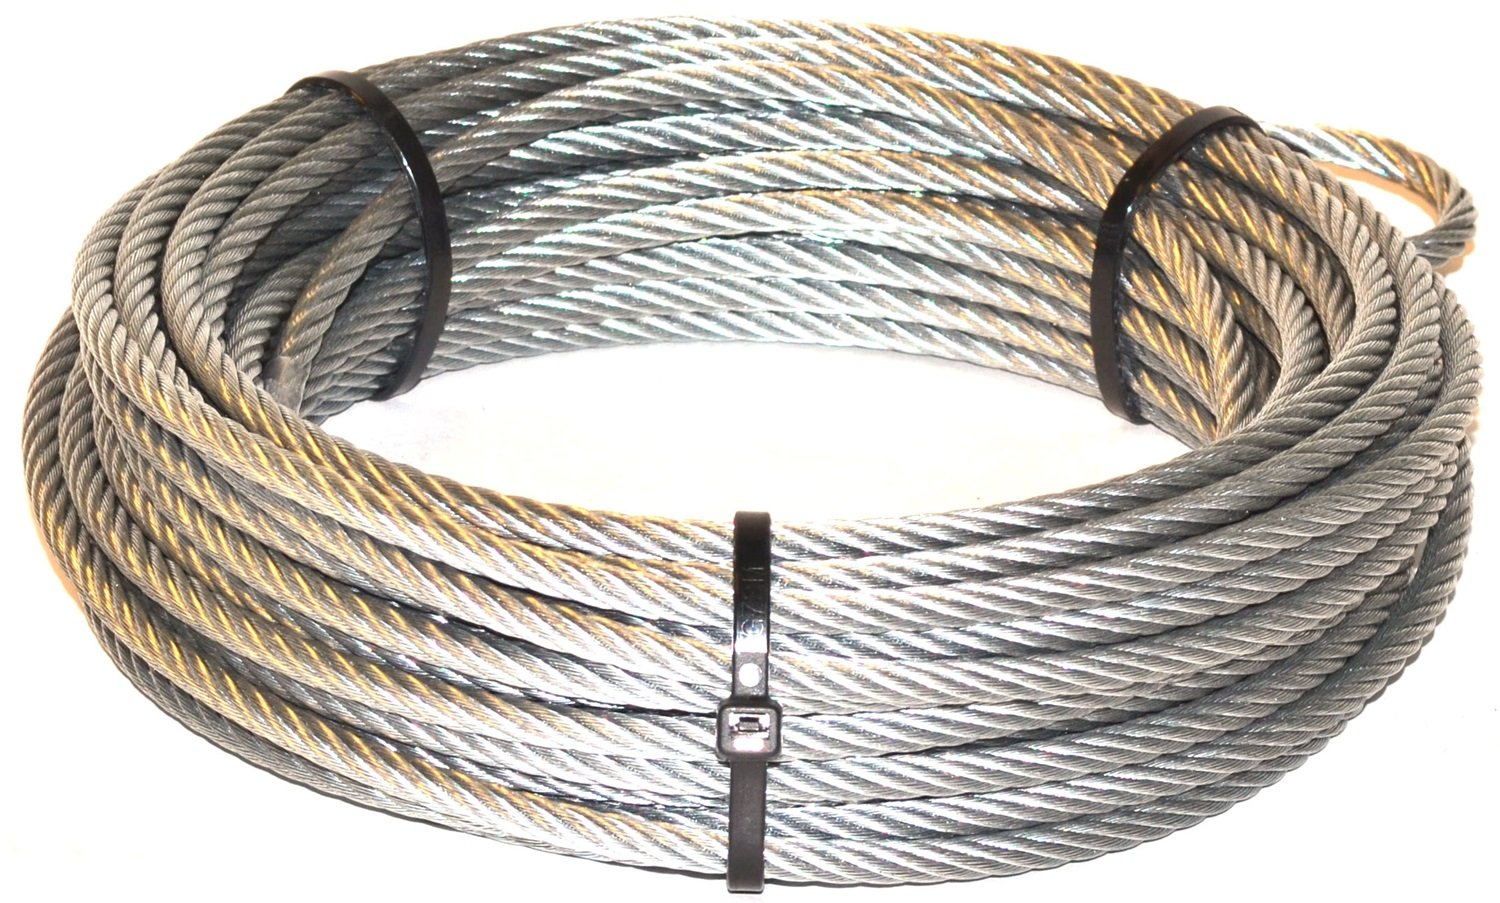 WARN 68851 Winch Rope - 7/32 in. x 55 ft.